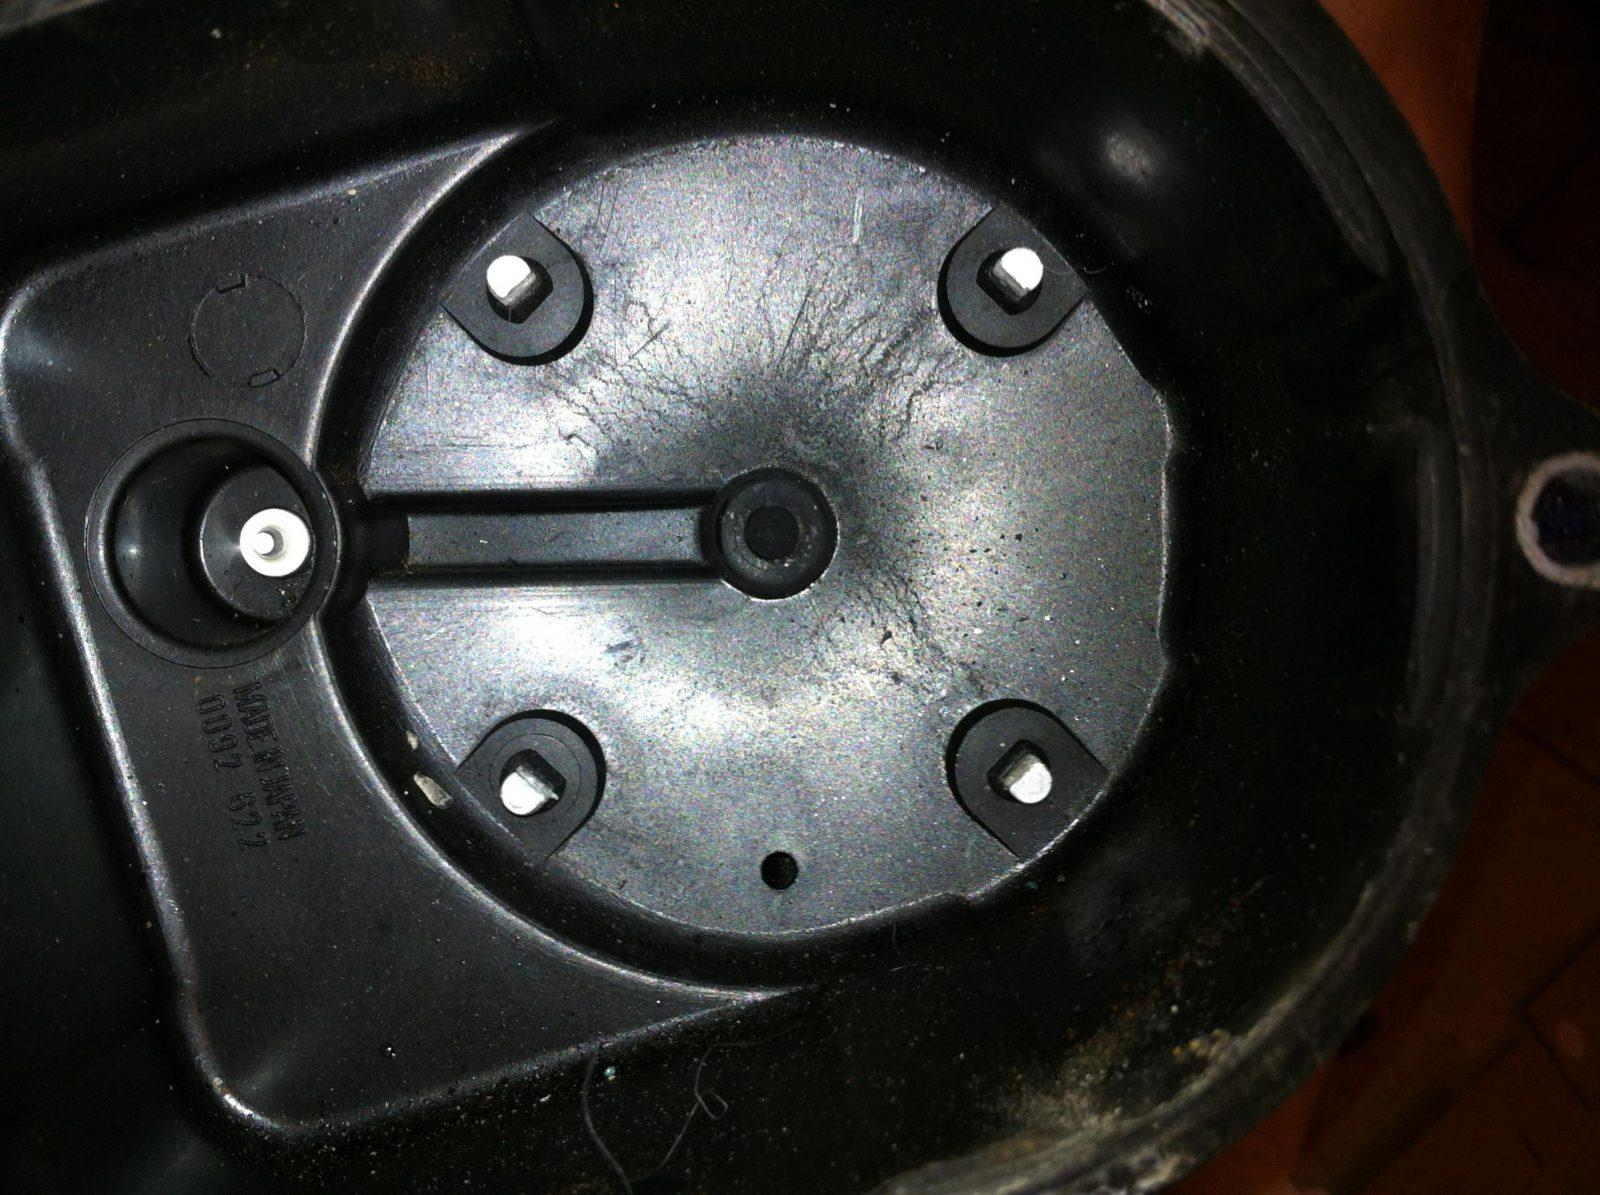 Bad Distributor Cap Symptoms: Things to look for - CAR FROM JAPAN